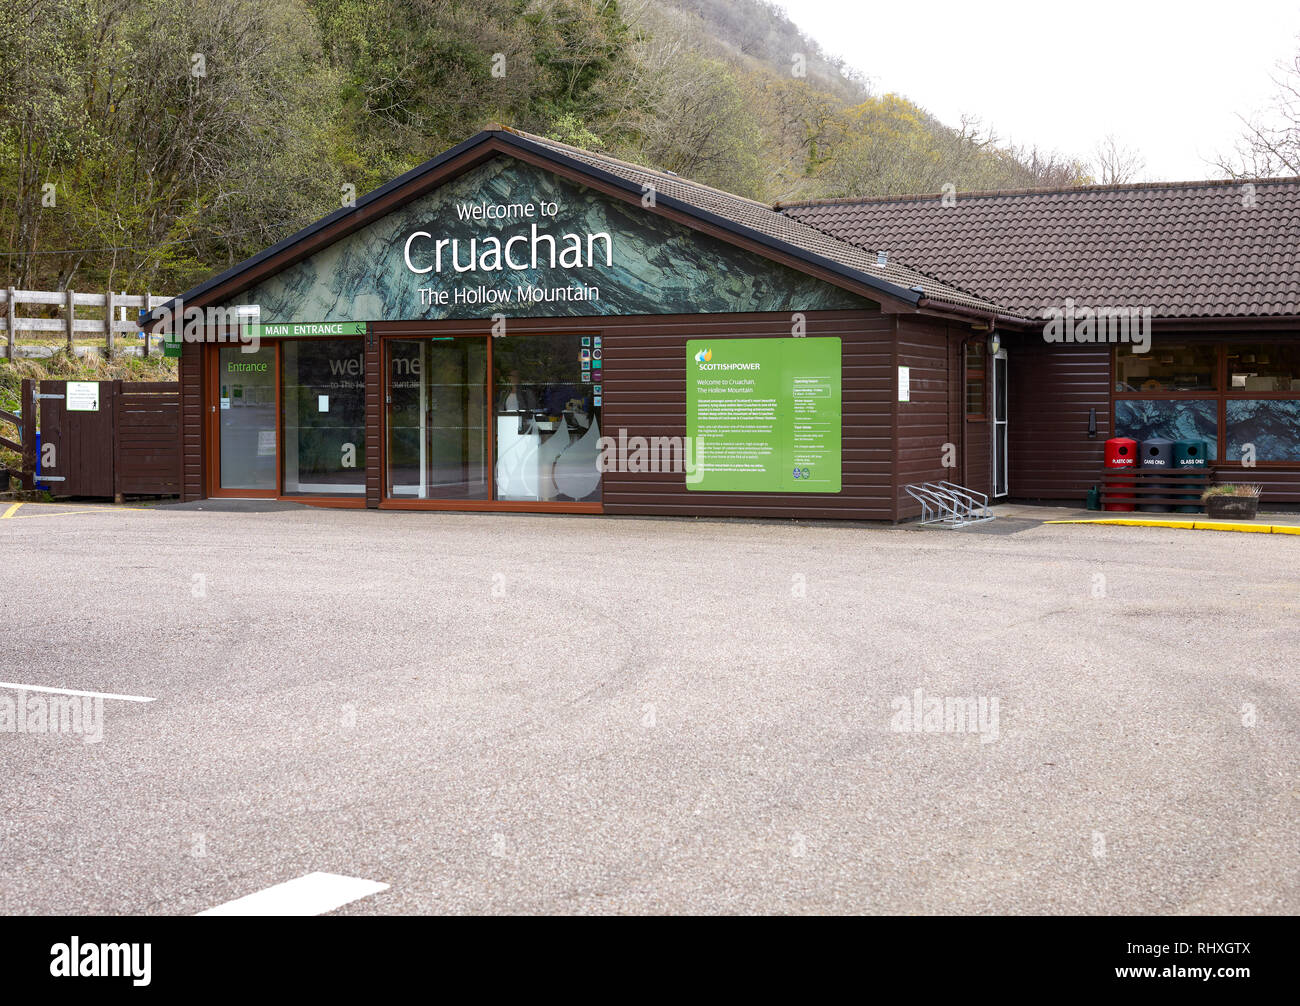 CRUACHAN VISITOR CENTRE, 1st May 2018. Out of season, empty and deserted, the main entrance to exhibitions, displays, cafe, gift shop, - Stock Image